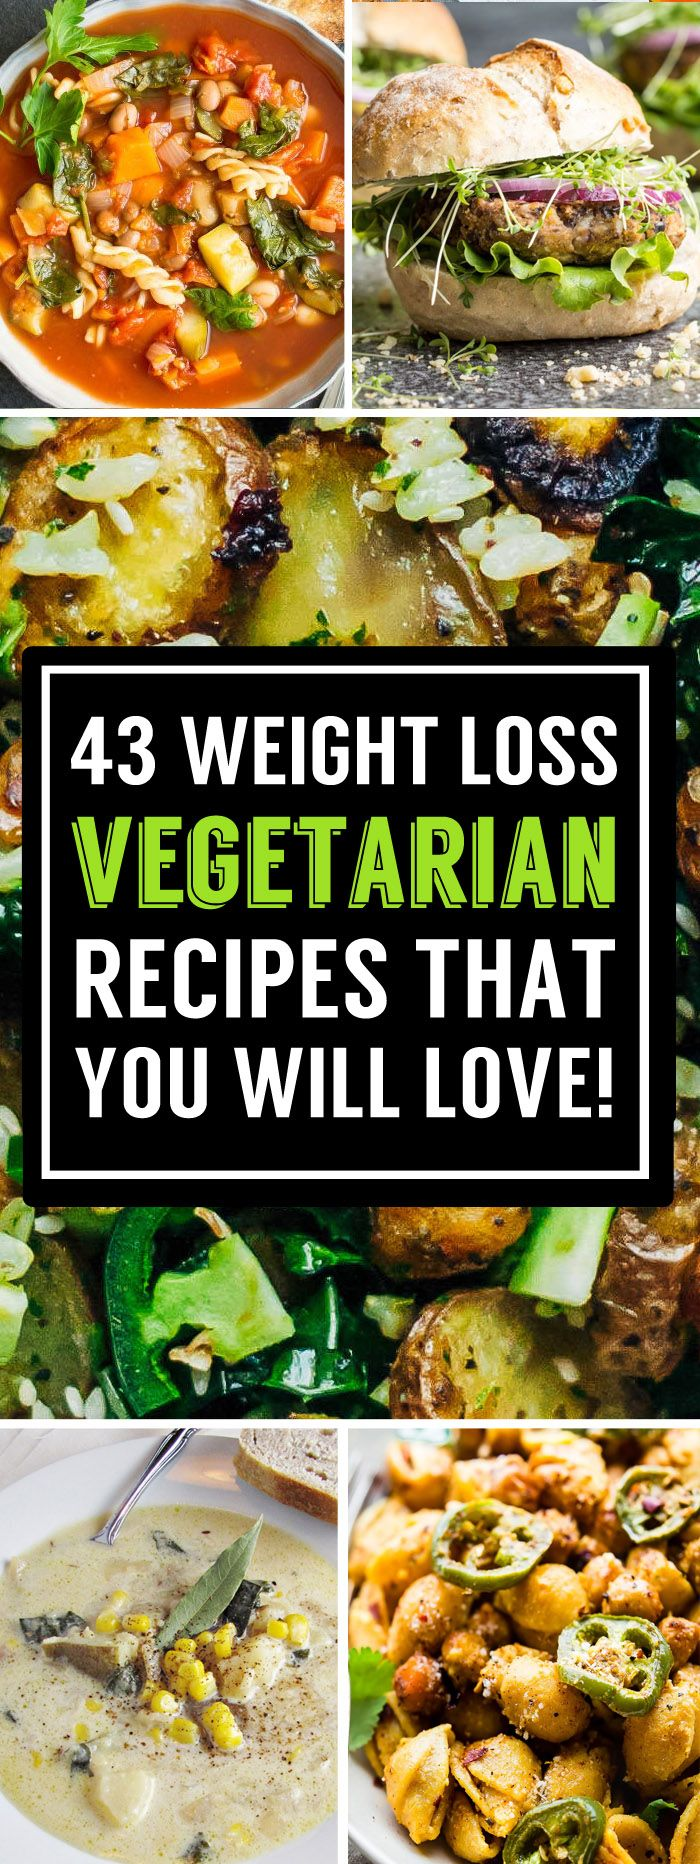 43 Delicious Vegetarian Recipes That Can Help Boost Your Diet Gains! -   15 healthy recipes vegetarian ideas